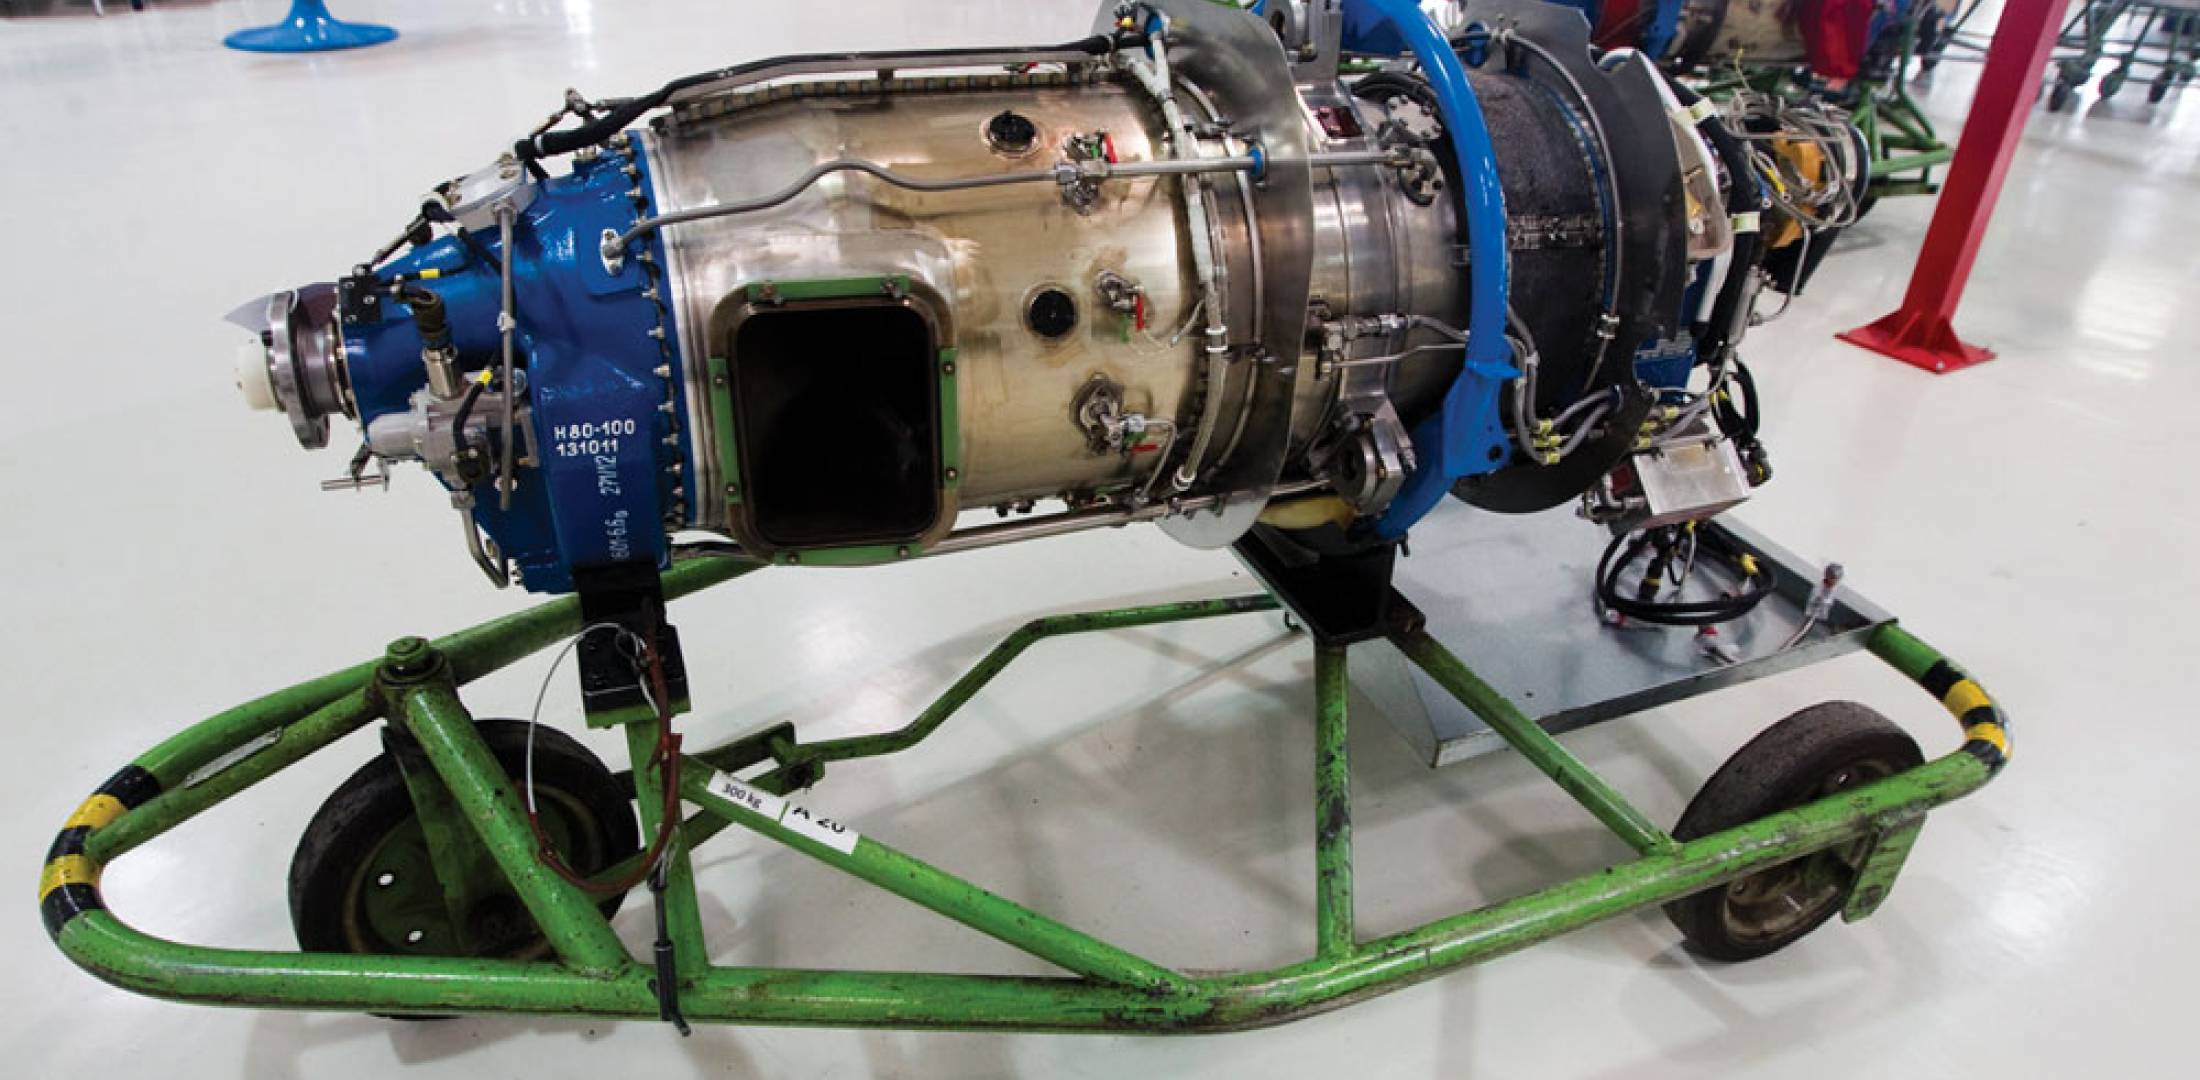 Although air flows through the H80 from the rear to the front, with the two exhausts located just behind the propeller, it is a compact straight-flow design with no complex flow-reversal sections.